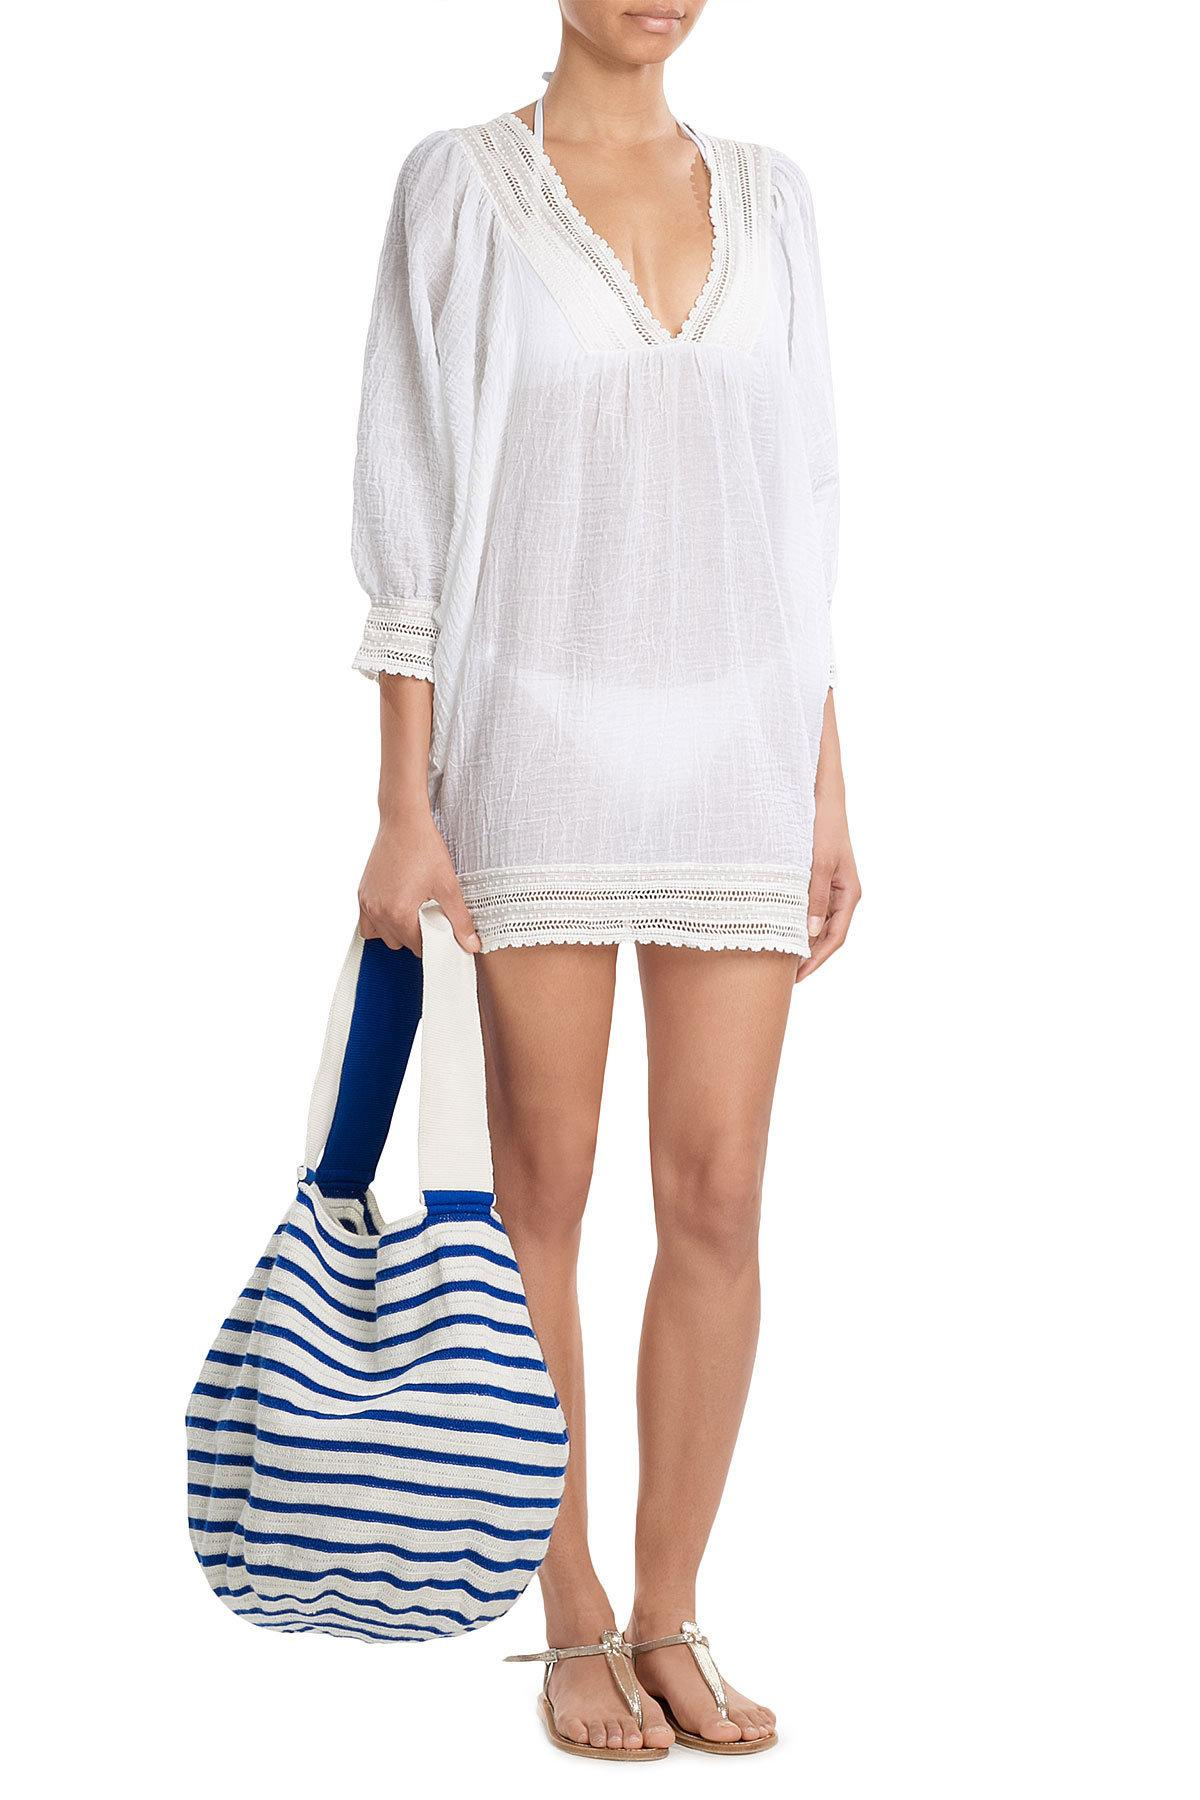 Sophie anderson Striped Cotton Tote in Blue